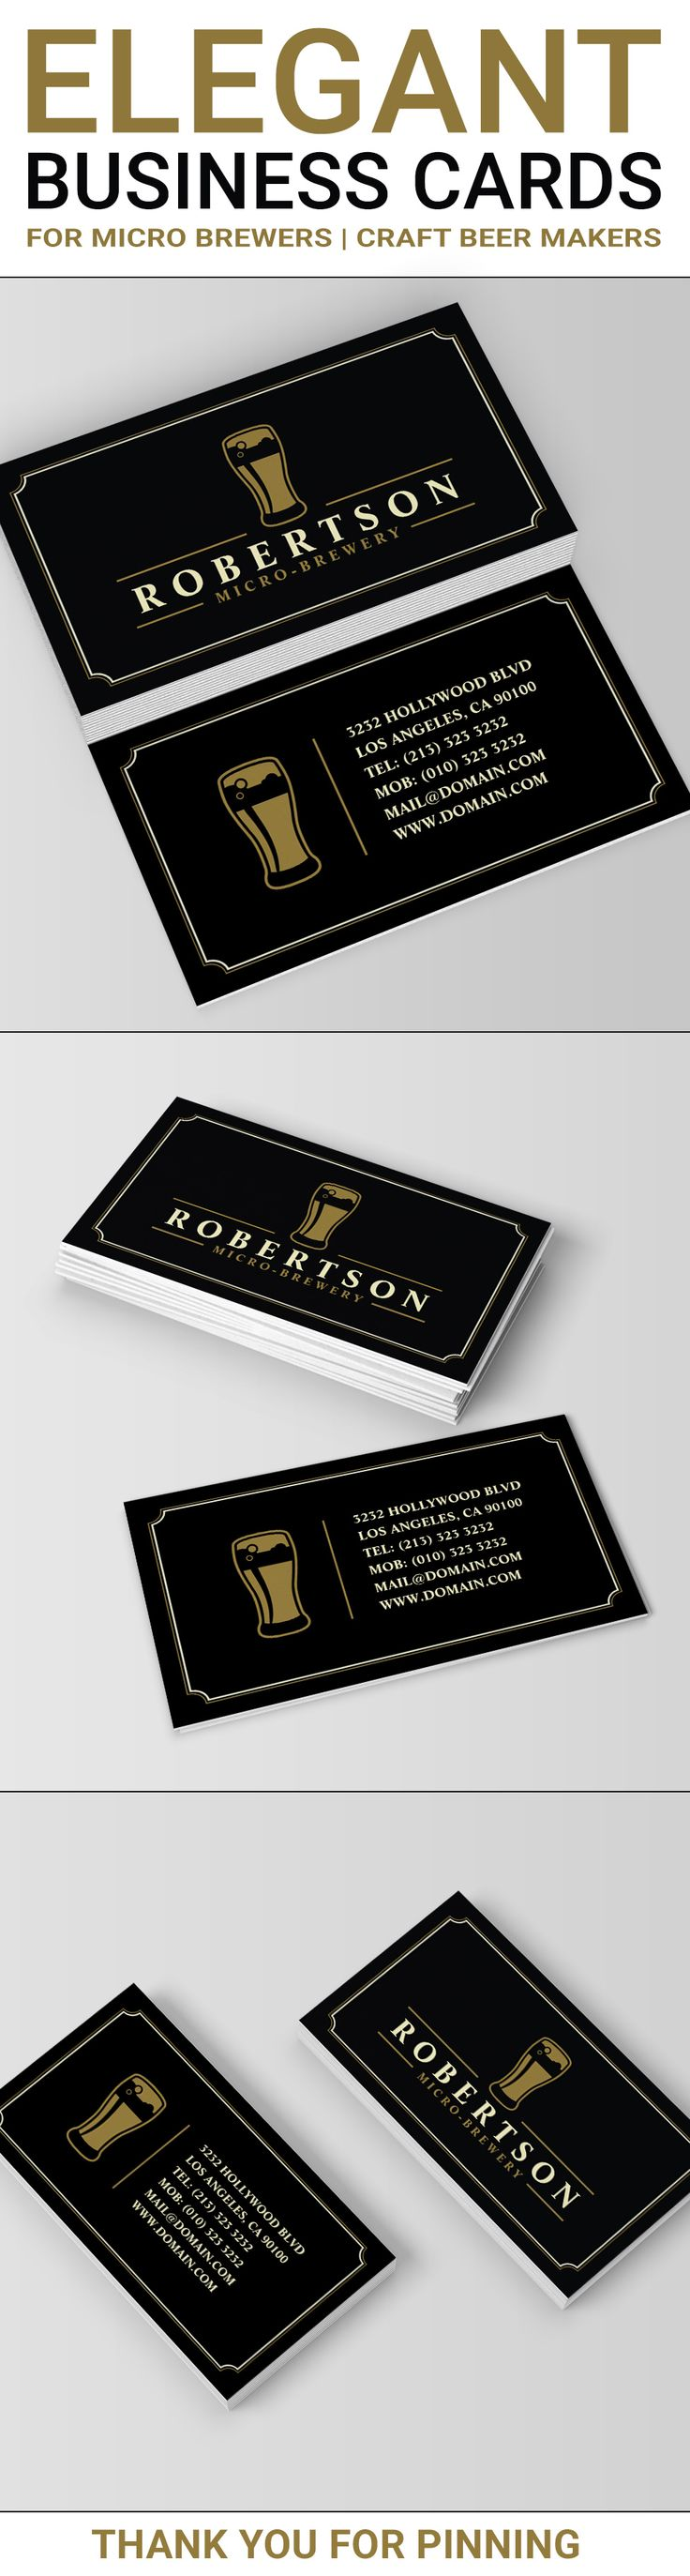 Elegant two sided business cards design ideal for micro breweries and craft beer makers. The design features a beer glass logo which can be replaced (optional) with your own. This micro brewery business card template is using the front of the design for your business name and the back for your contact information. The beer glass logo is shown on both sides of the micro brewery business card. Created by J32 Design at j32design.com